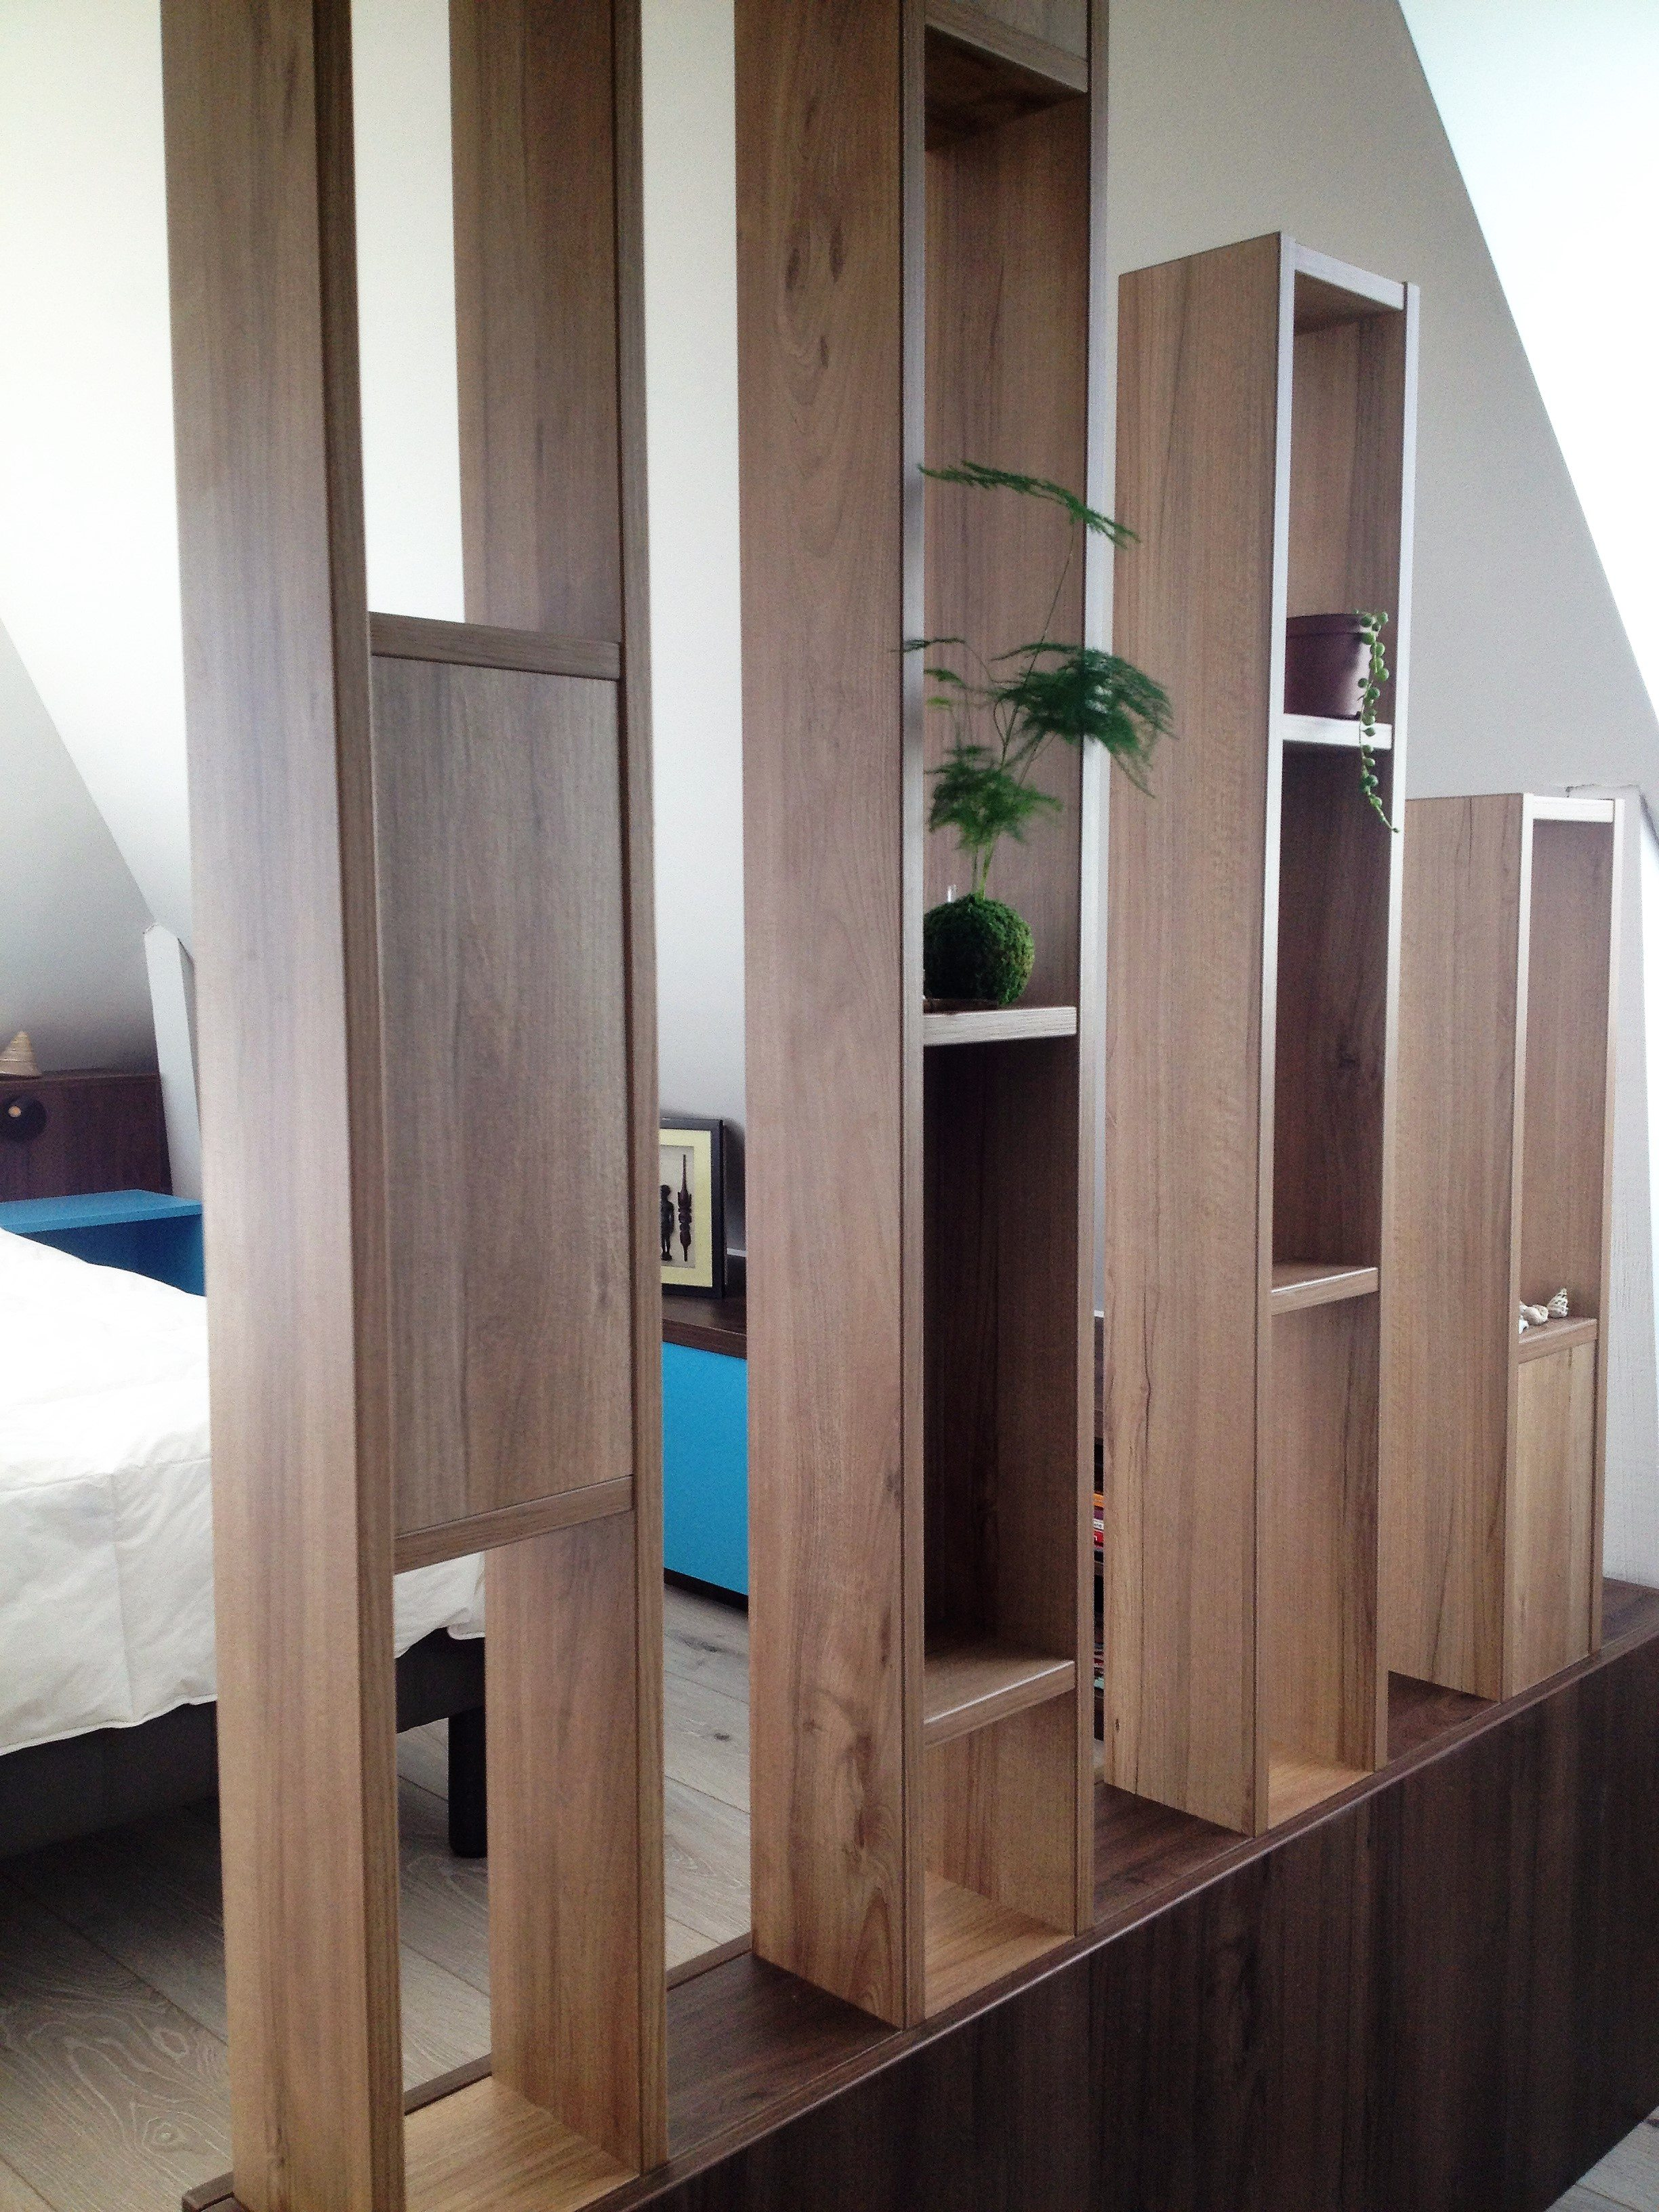 cr ation agencement chambres vannes morbihan. Black Bedroom Furniture Sets. Home Design Ideas